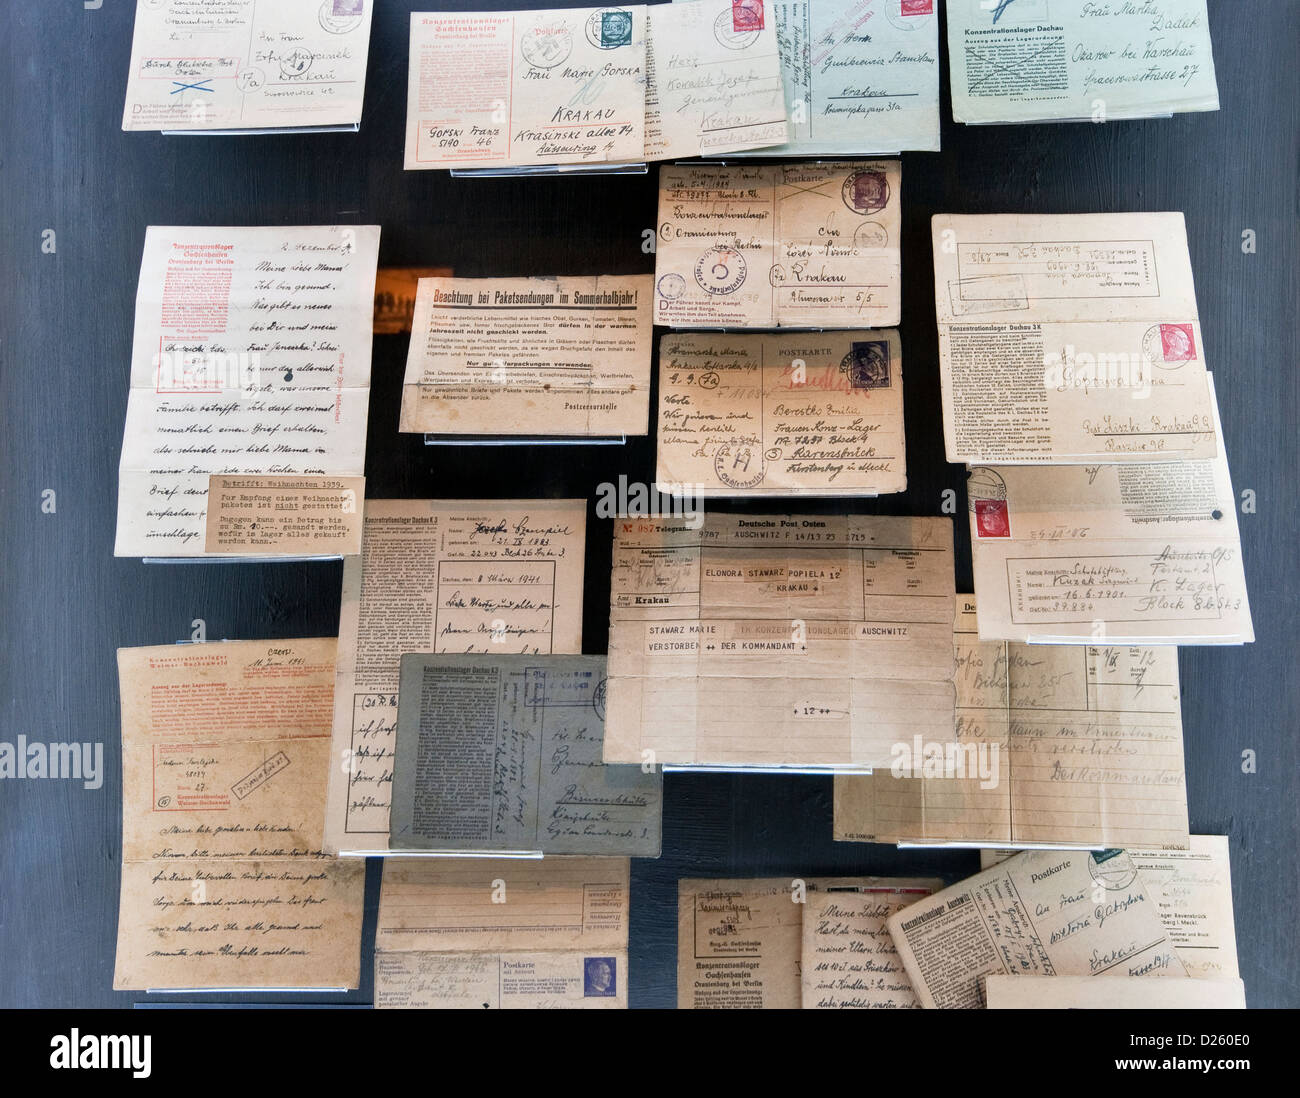 Letters of Polish and Jewish prisoners of concentration camps, Oskar Schindler's Factory Museum in Krakow, Poland - Stock Image